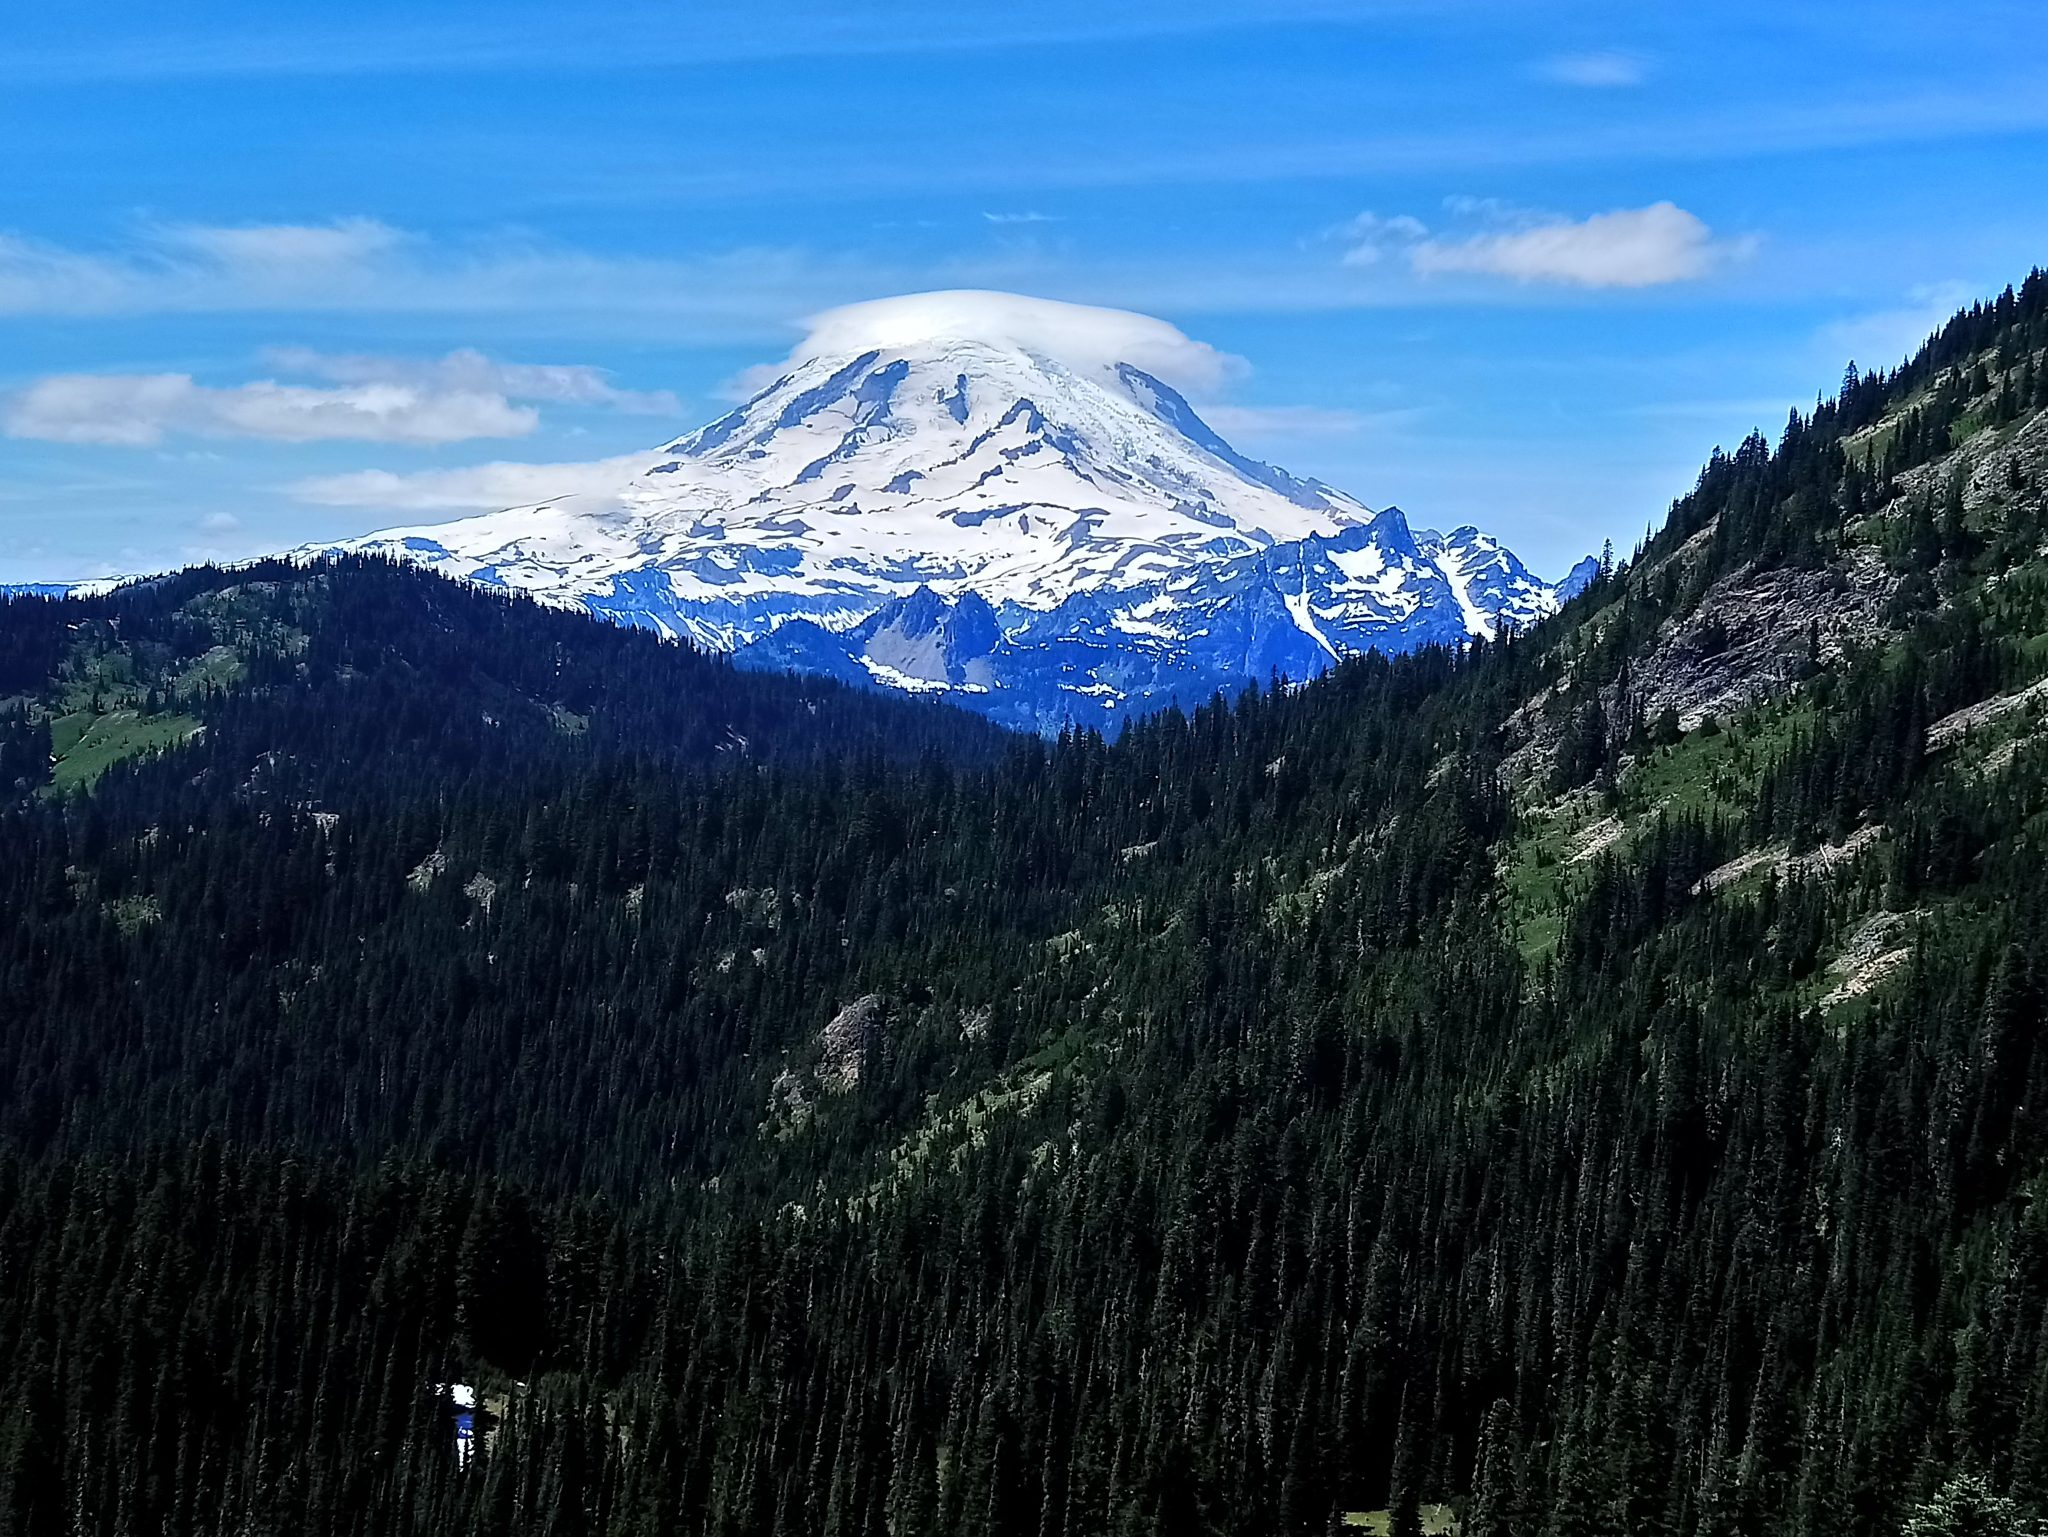 Mt. Rainer from the Pacific Crest Trail